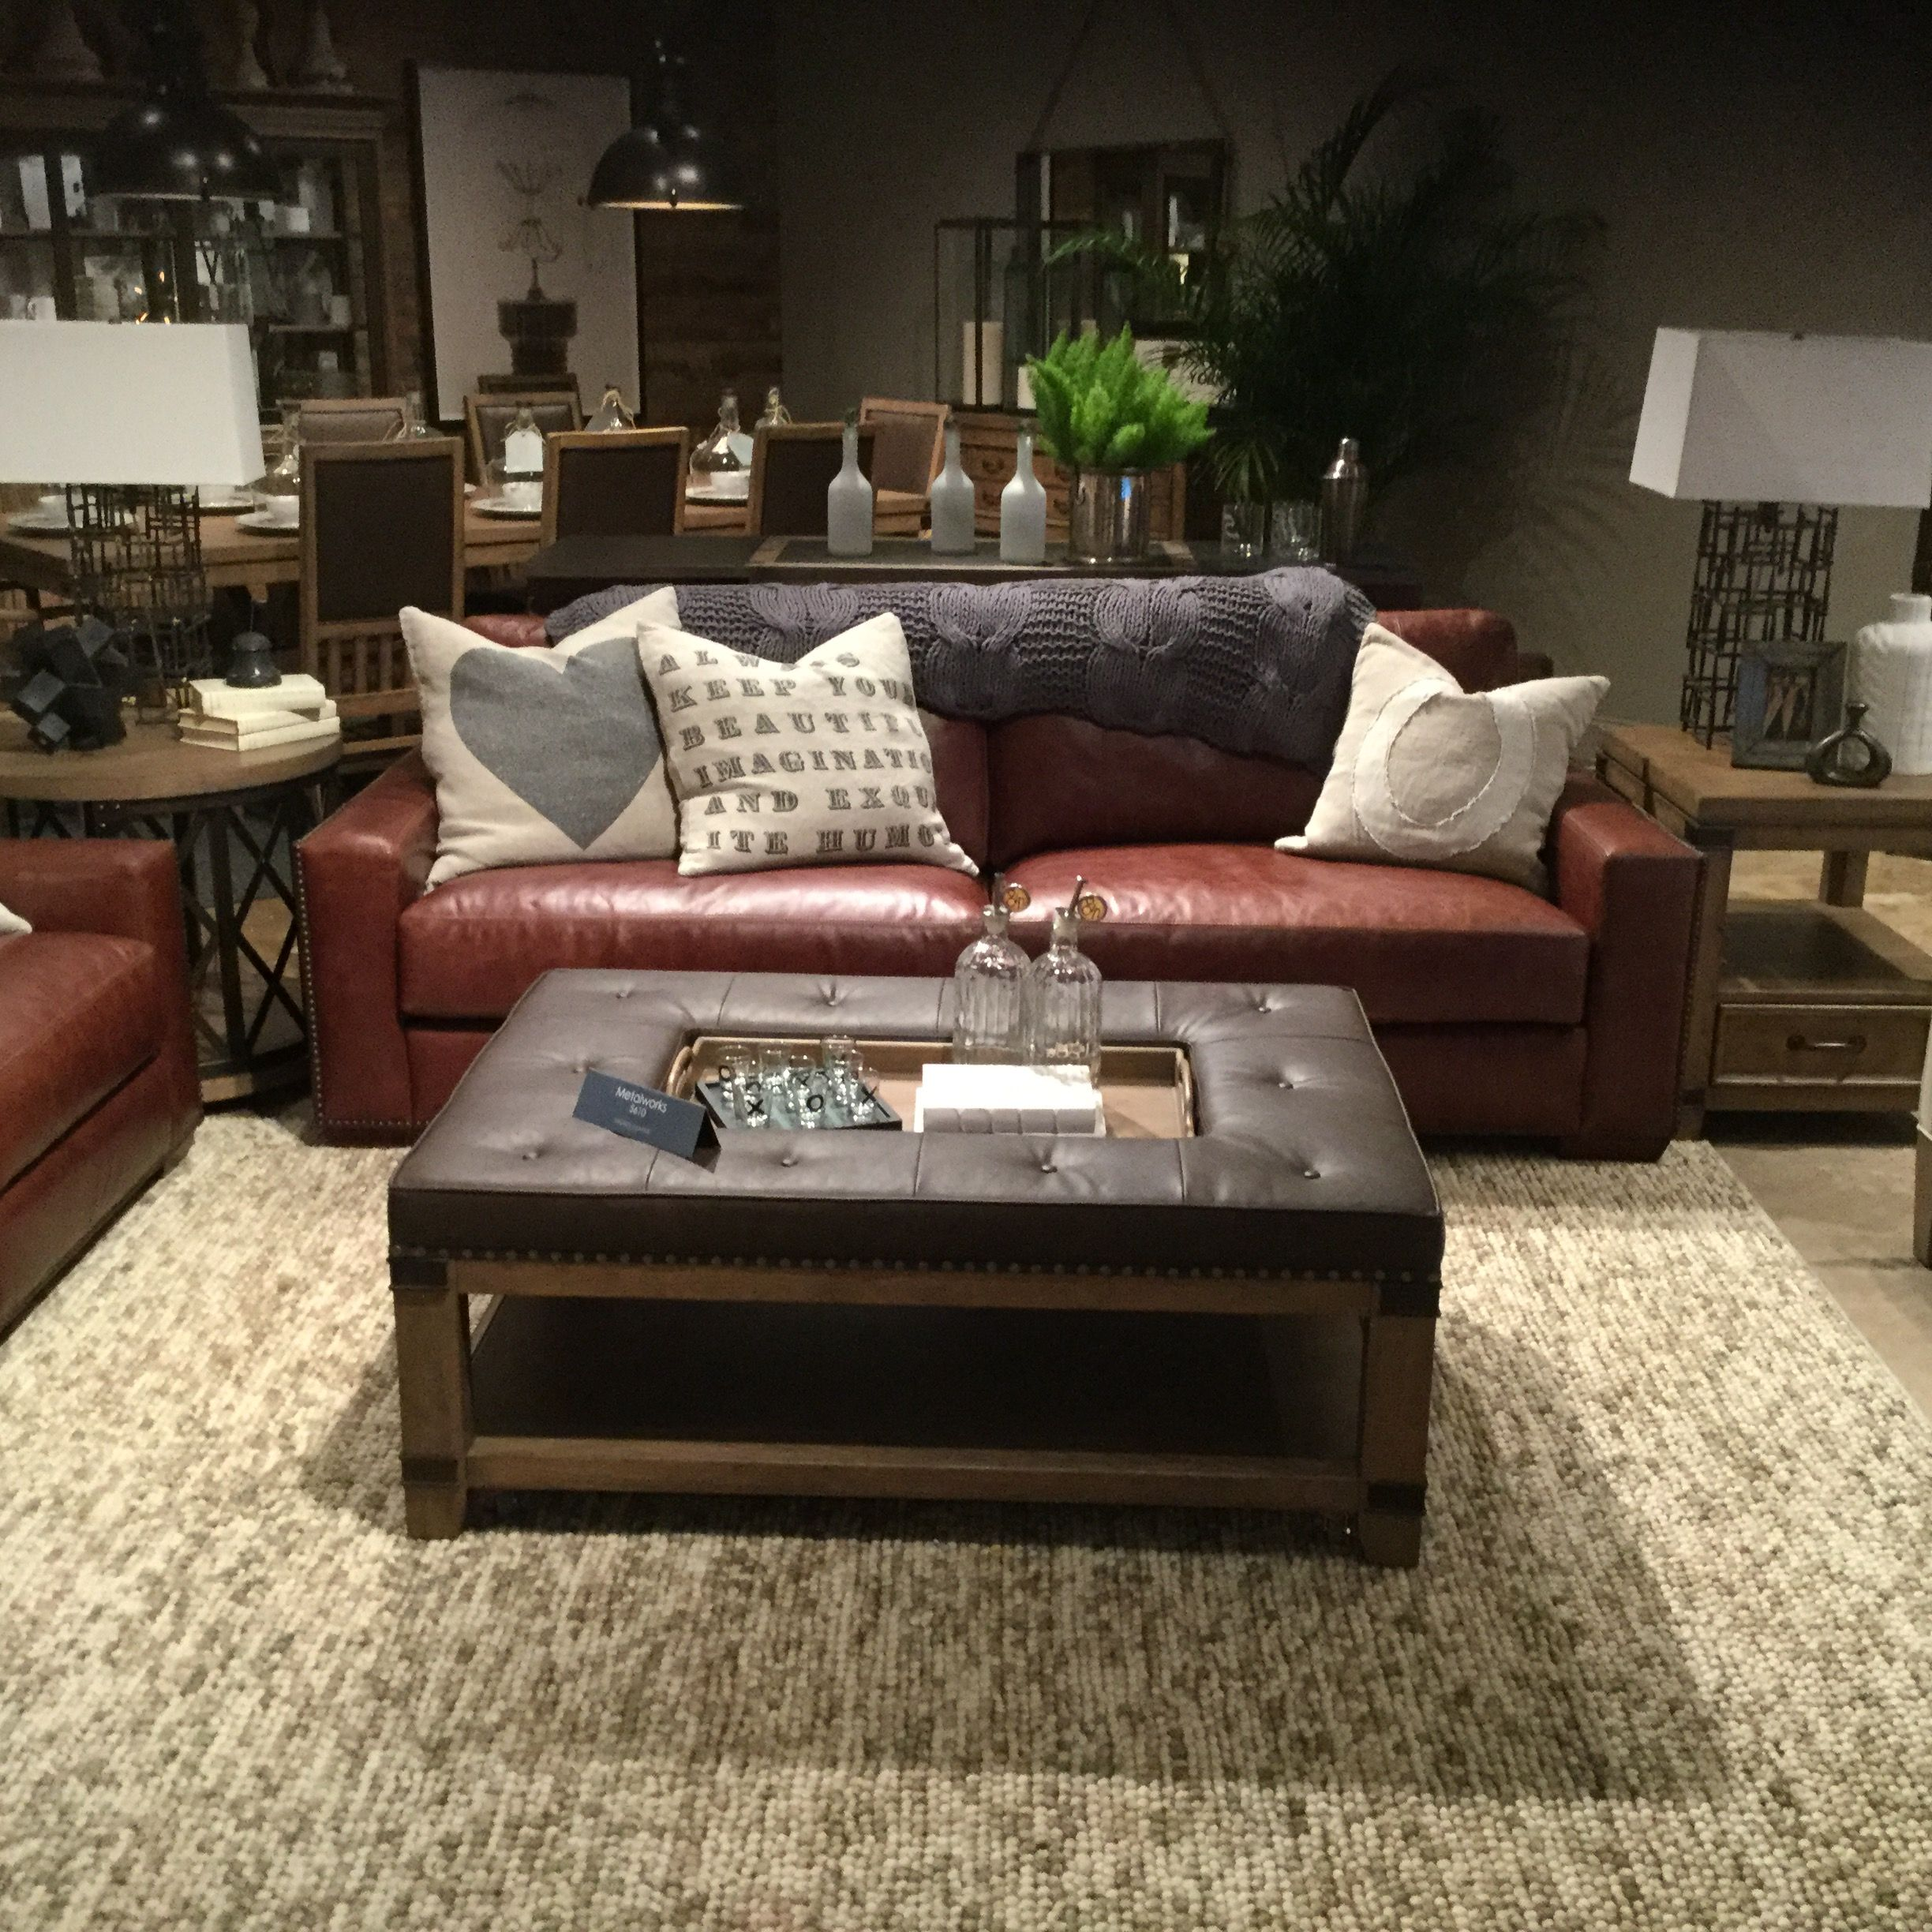 Luxe Leather Craftmaster Furniture Craftmaster Furniture Furniture Bed In Living Room